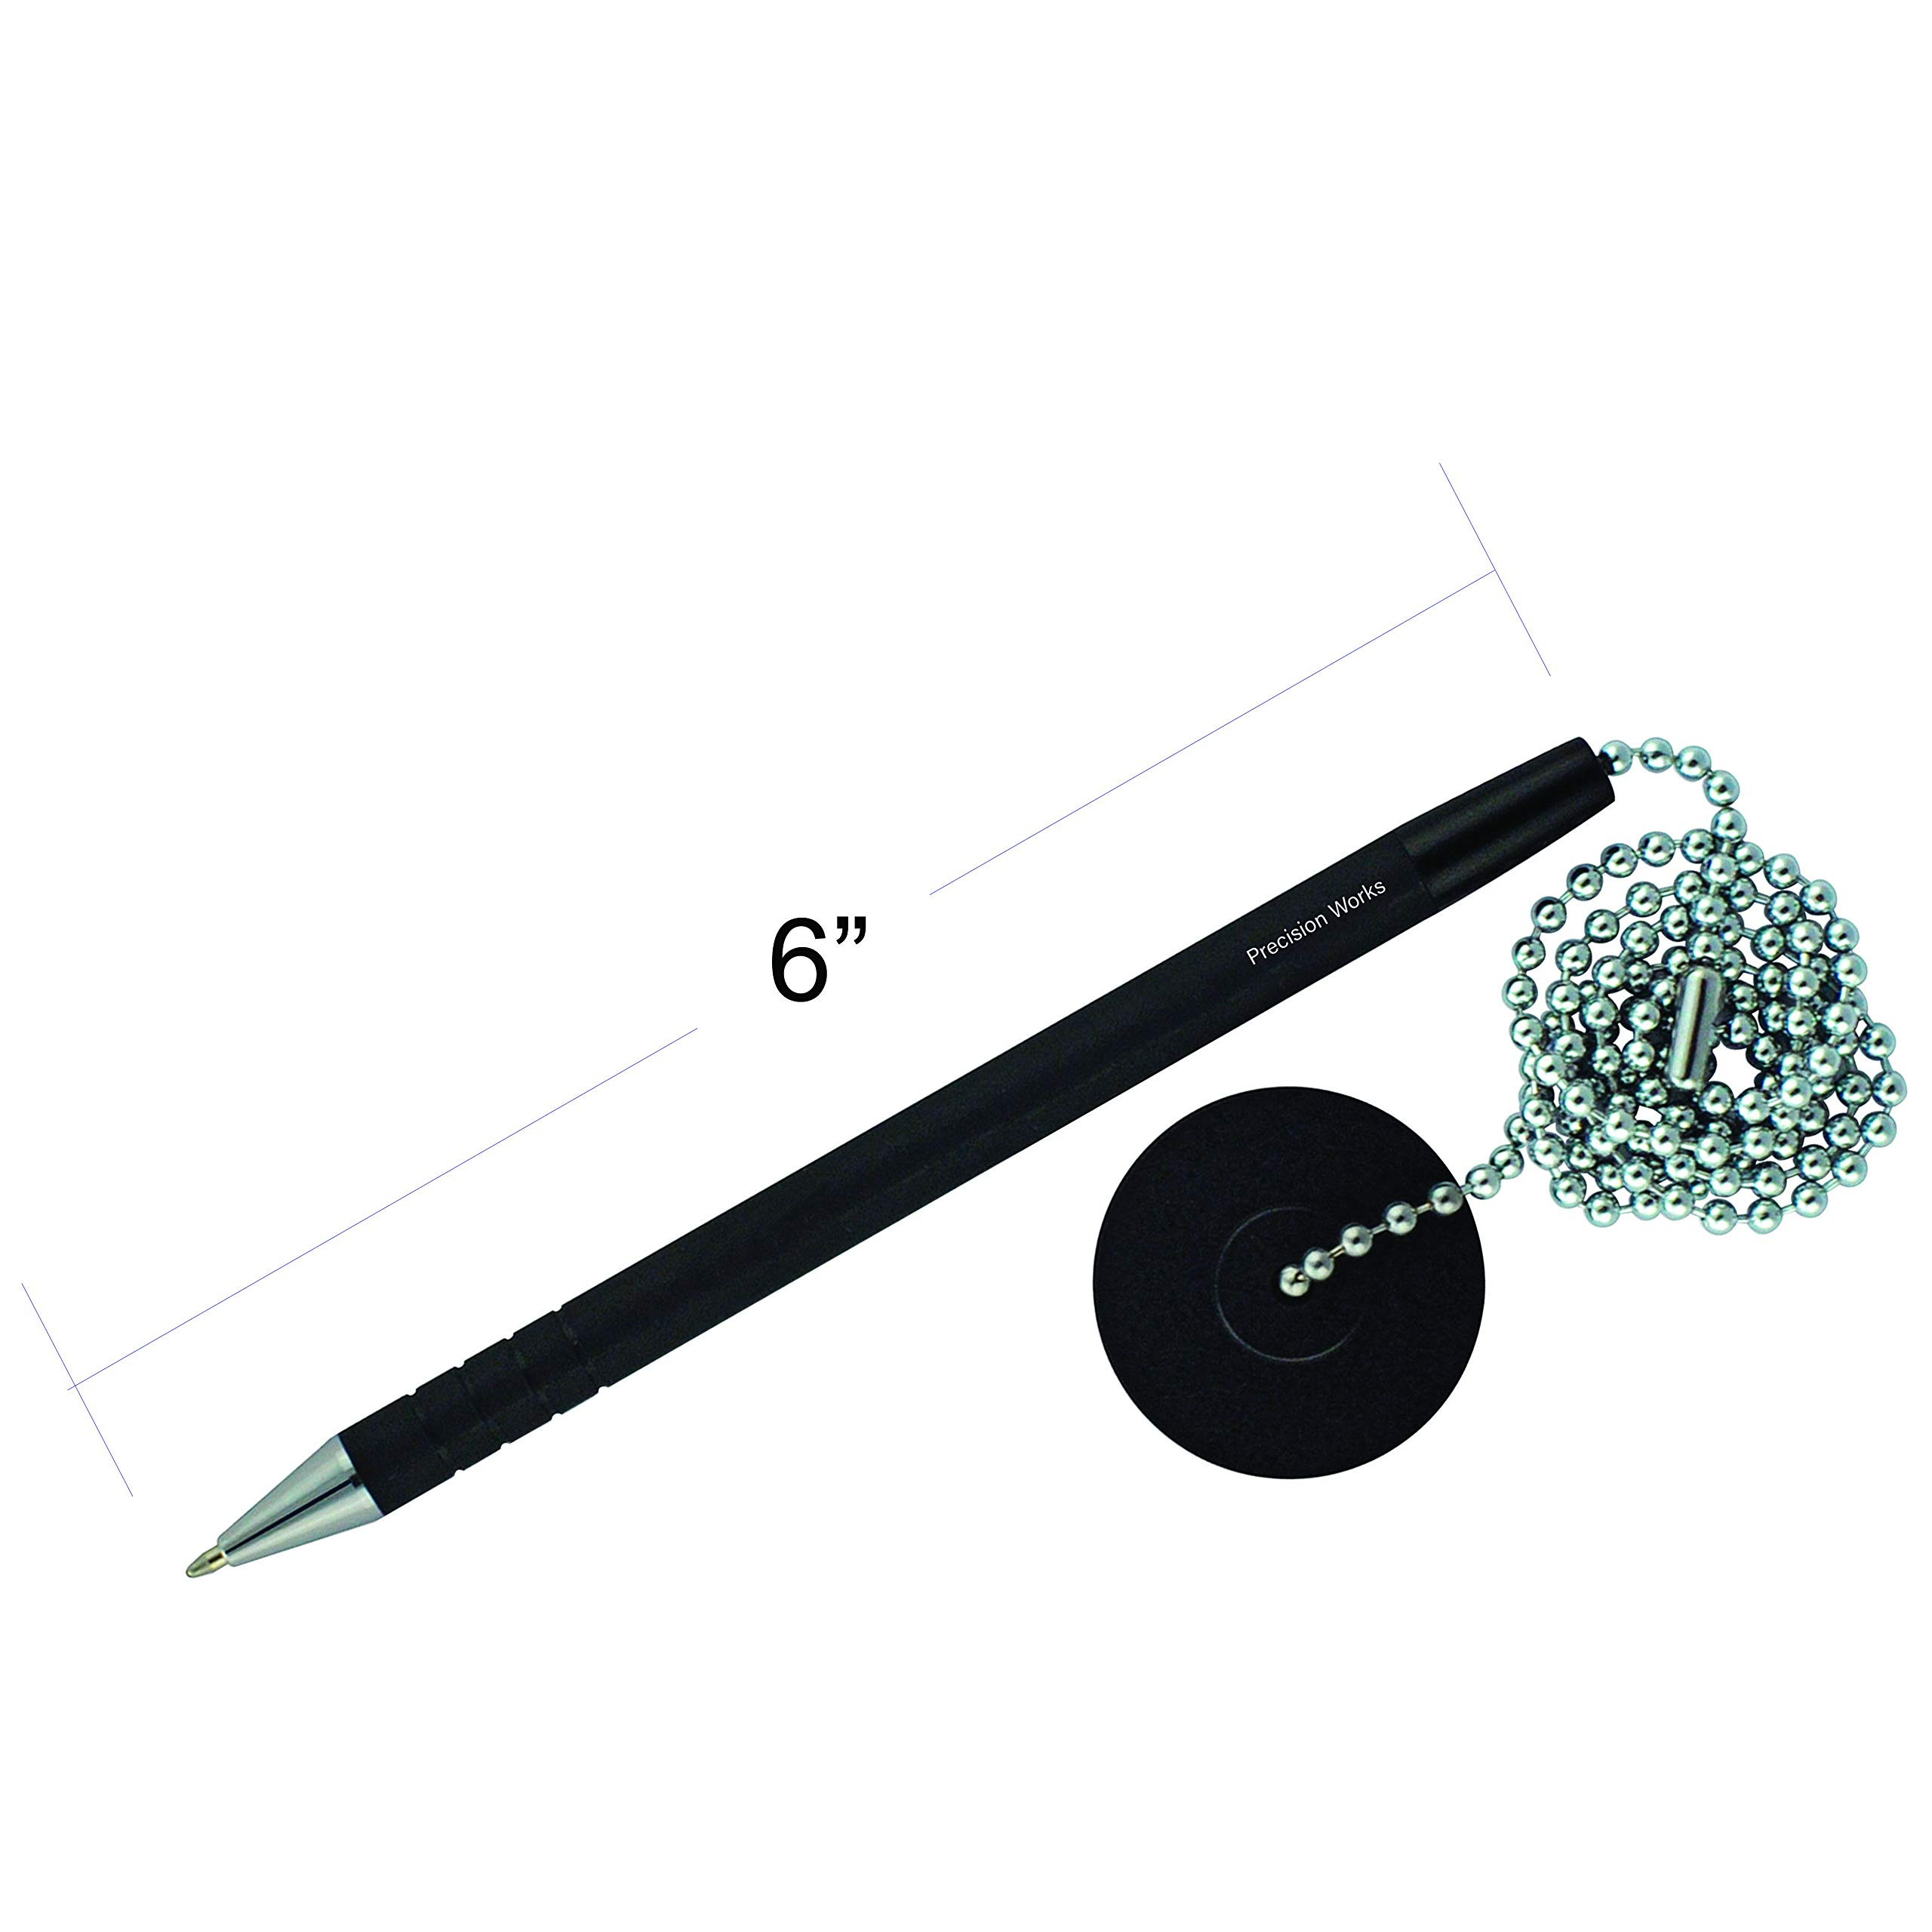 Secure Counter Pen With Adhesive Base & Metal Chain - Black Ink - Medium Point (12 Pack) by Precision Works (Image #2)